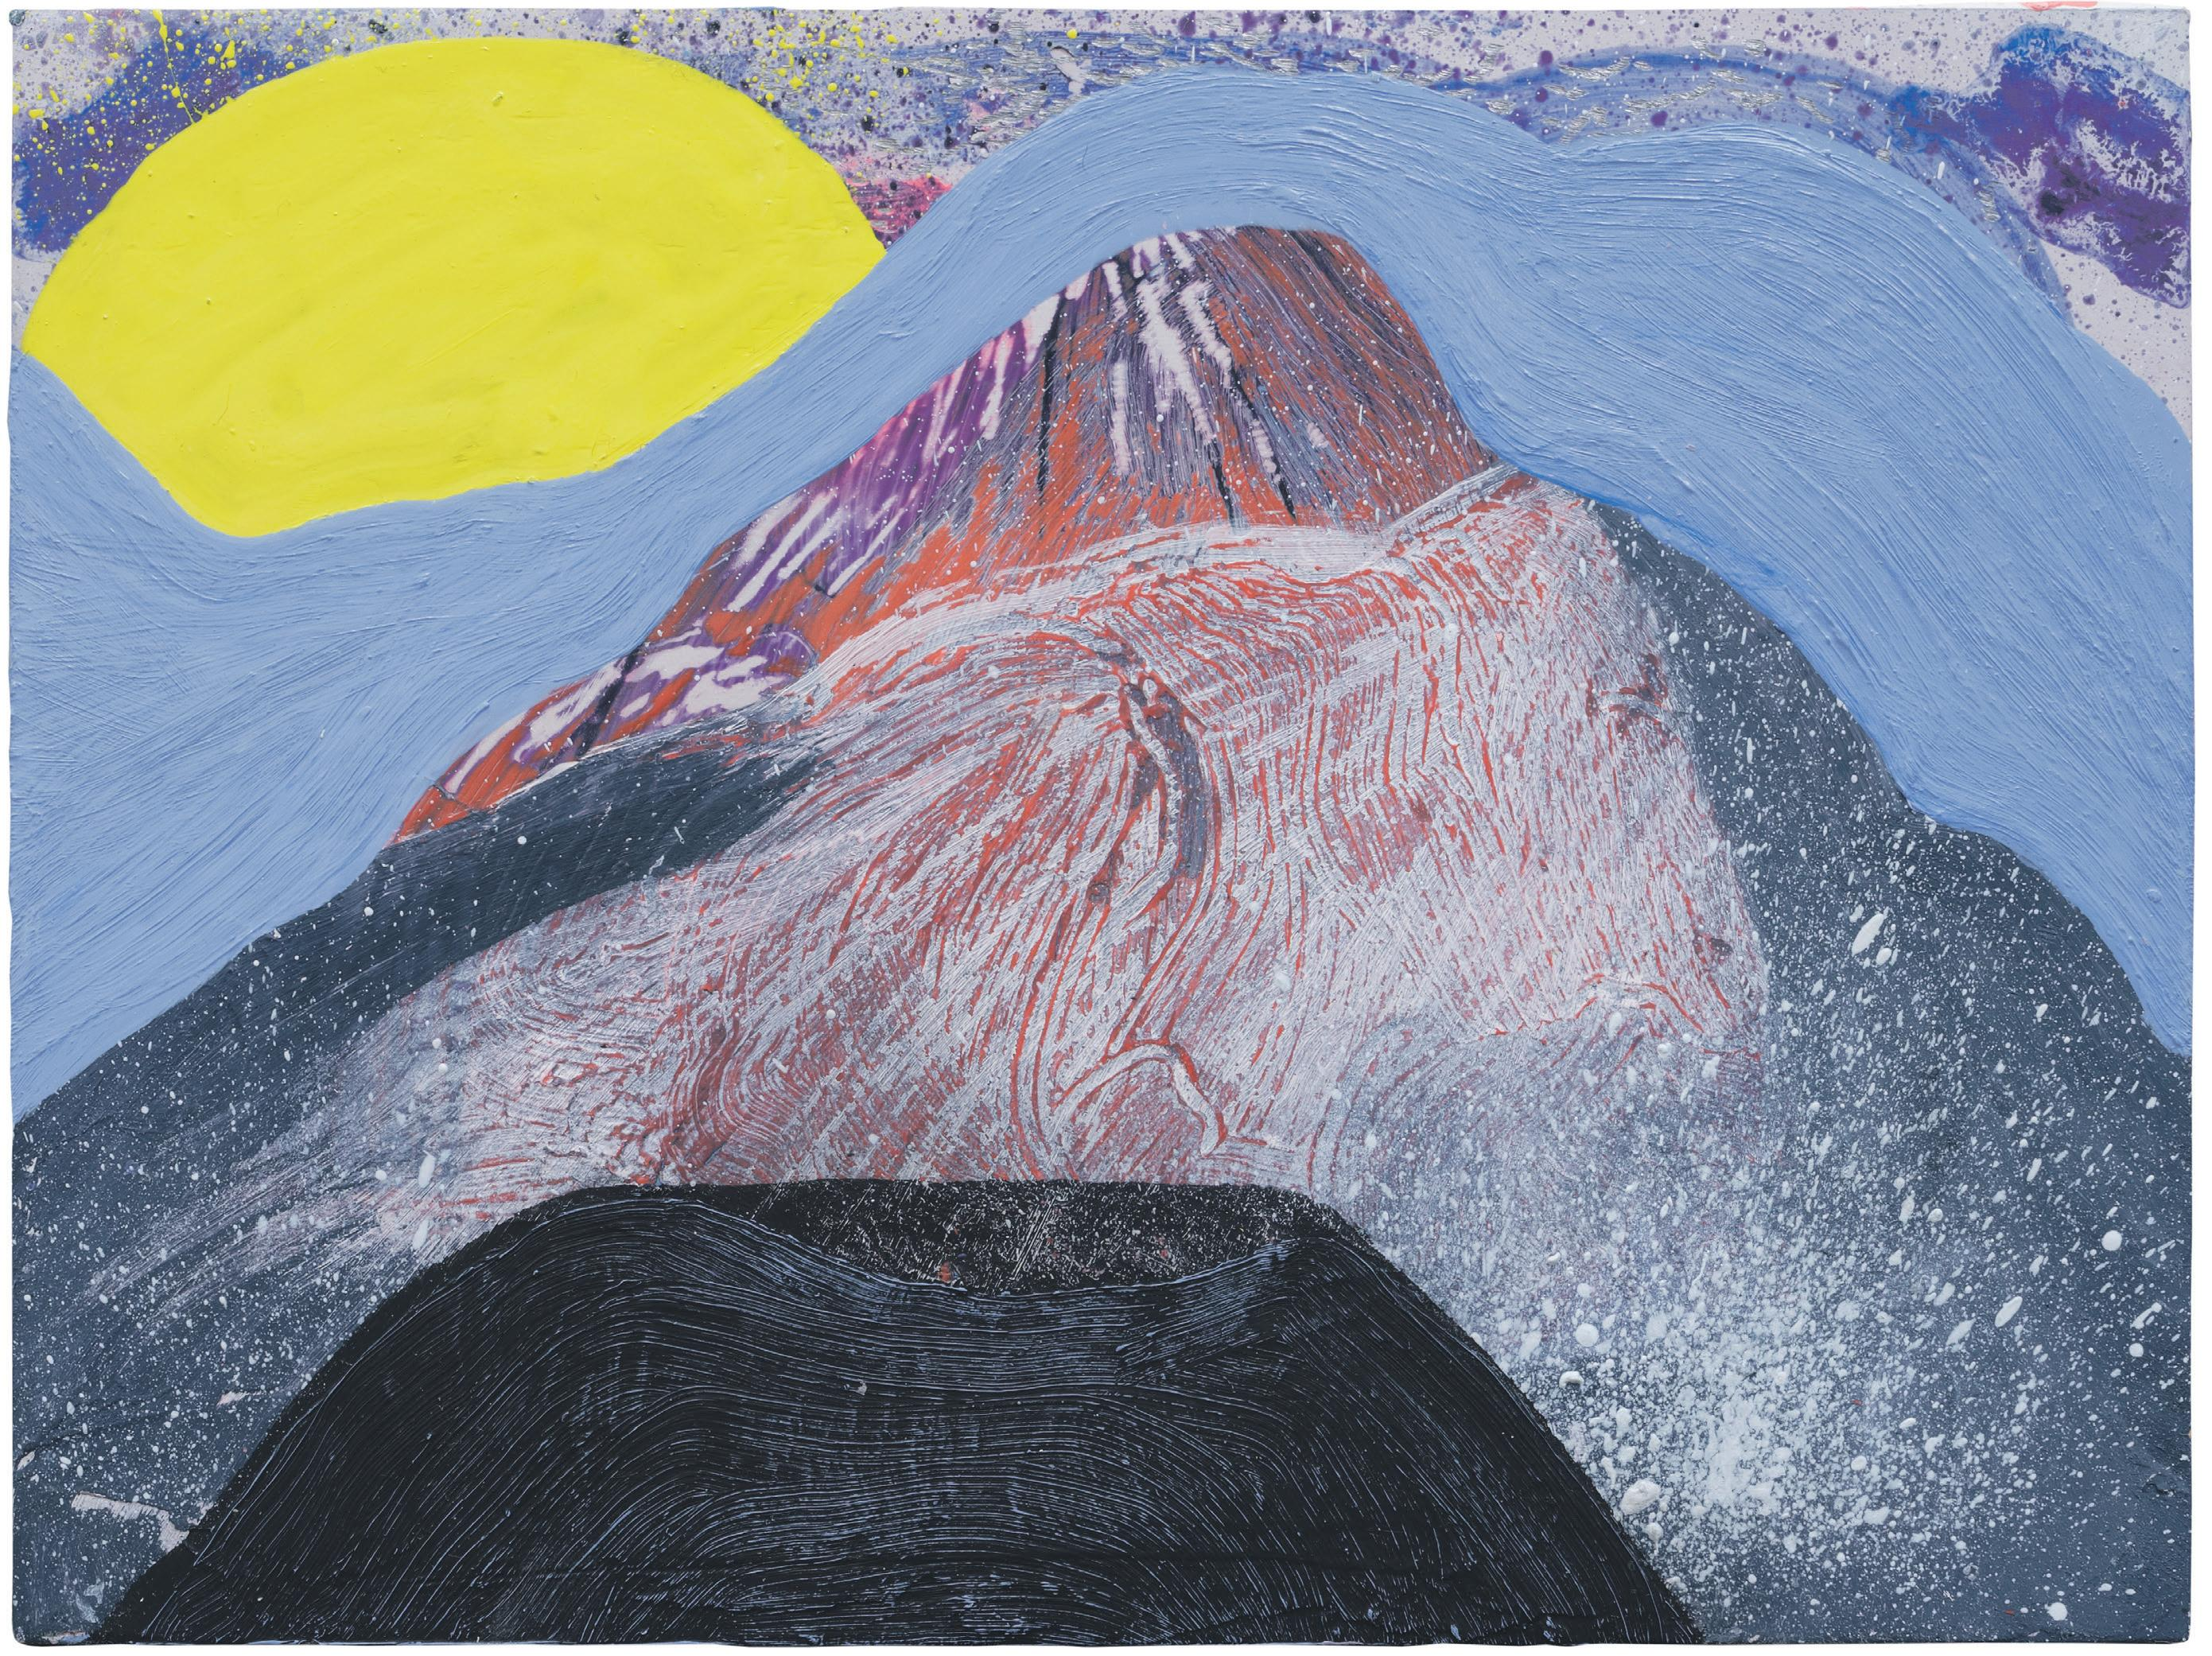 Page 14 of Carroll about his recent solo exhibition at the RHA